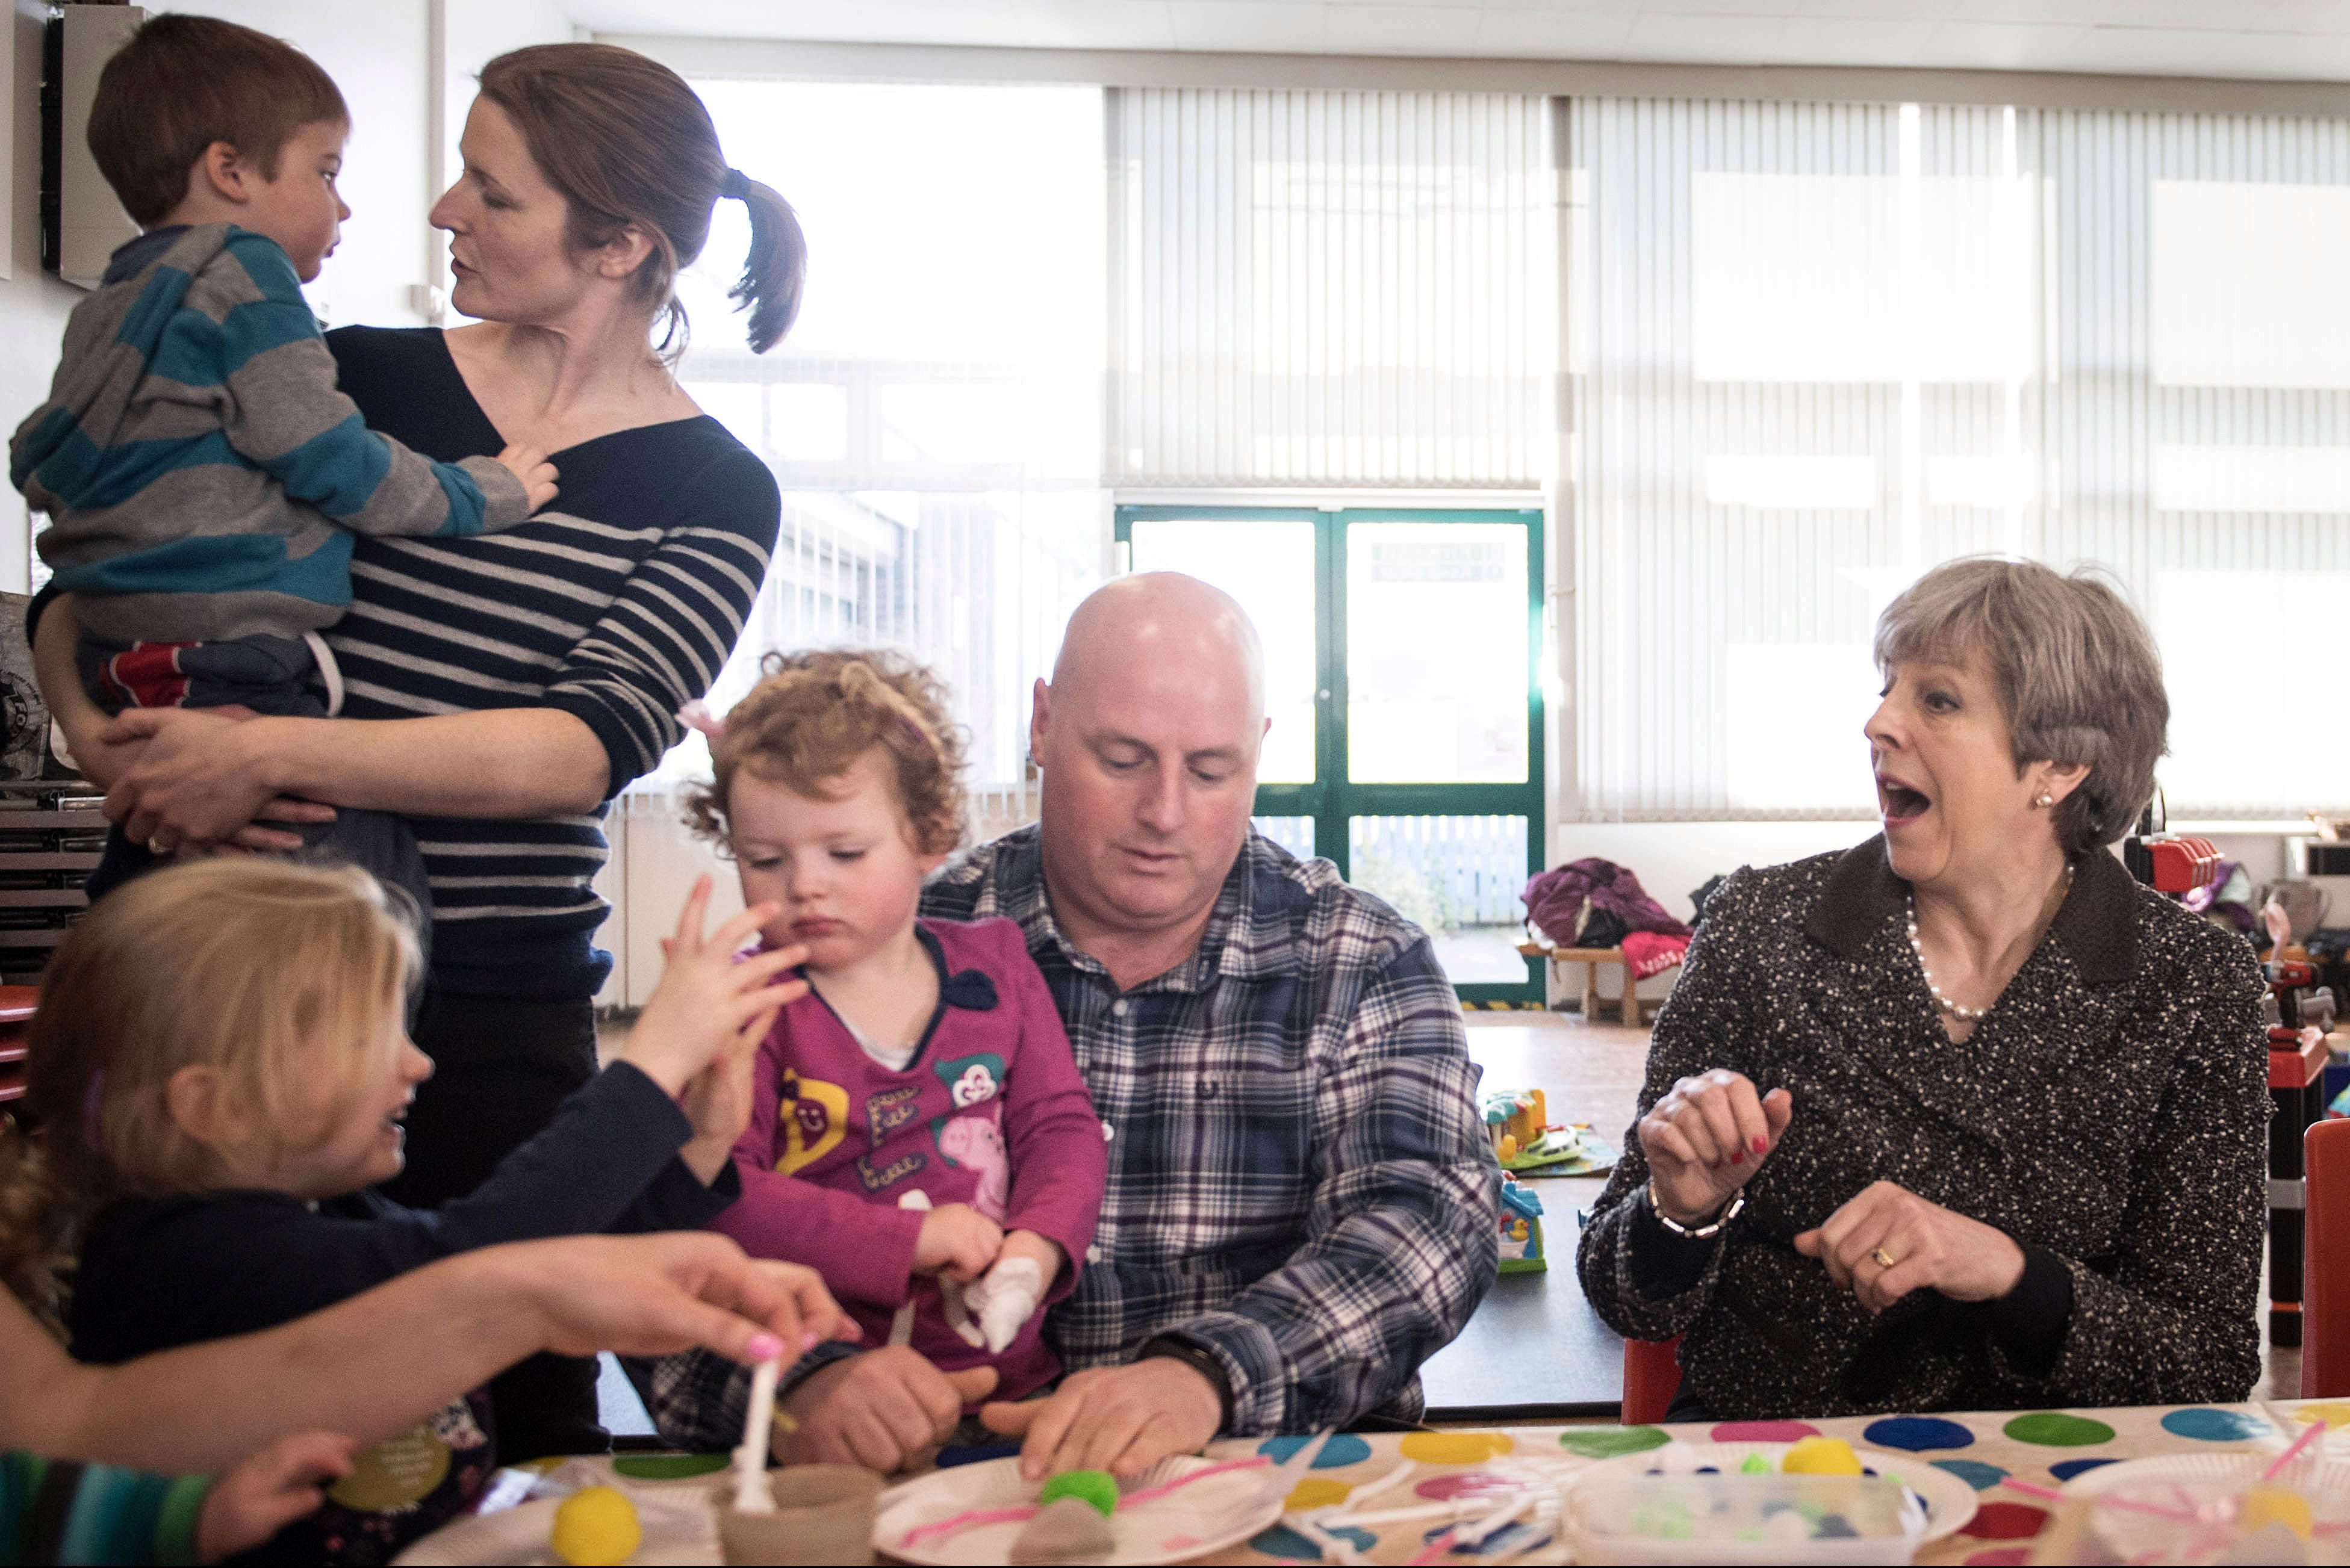 Britain's Prime Minister Theresa May meets a local parent and toddler group at St Andrew's Heddon-on-the-Wall, CofE Primary School in Newcastle, March 29, 2018.  Stefan Rousseau/Pool via Reuters - RC196377FD30